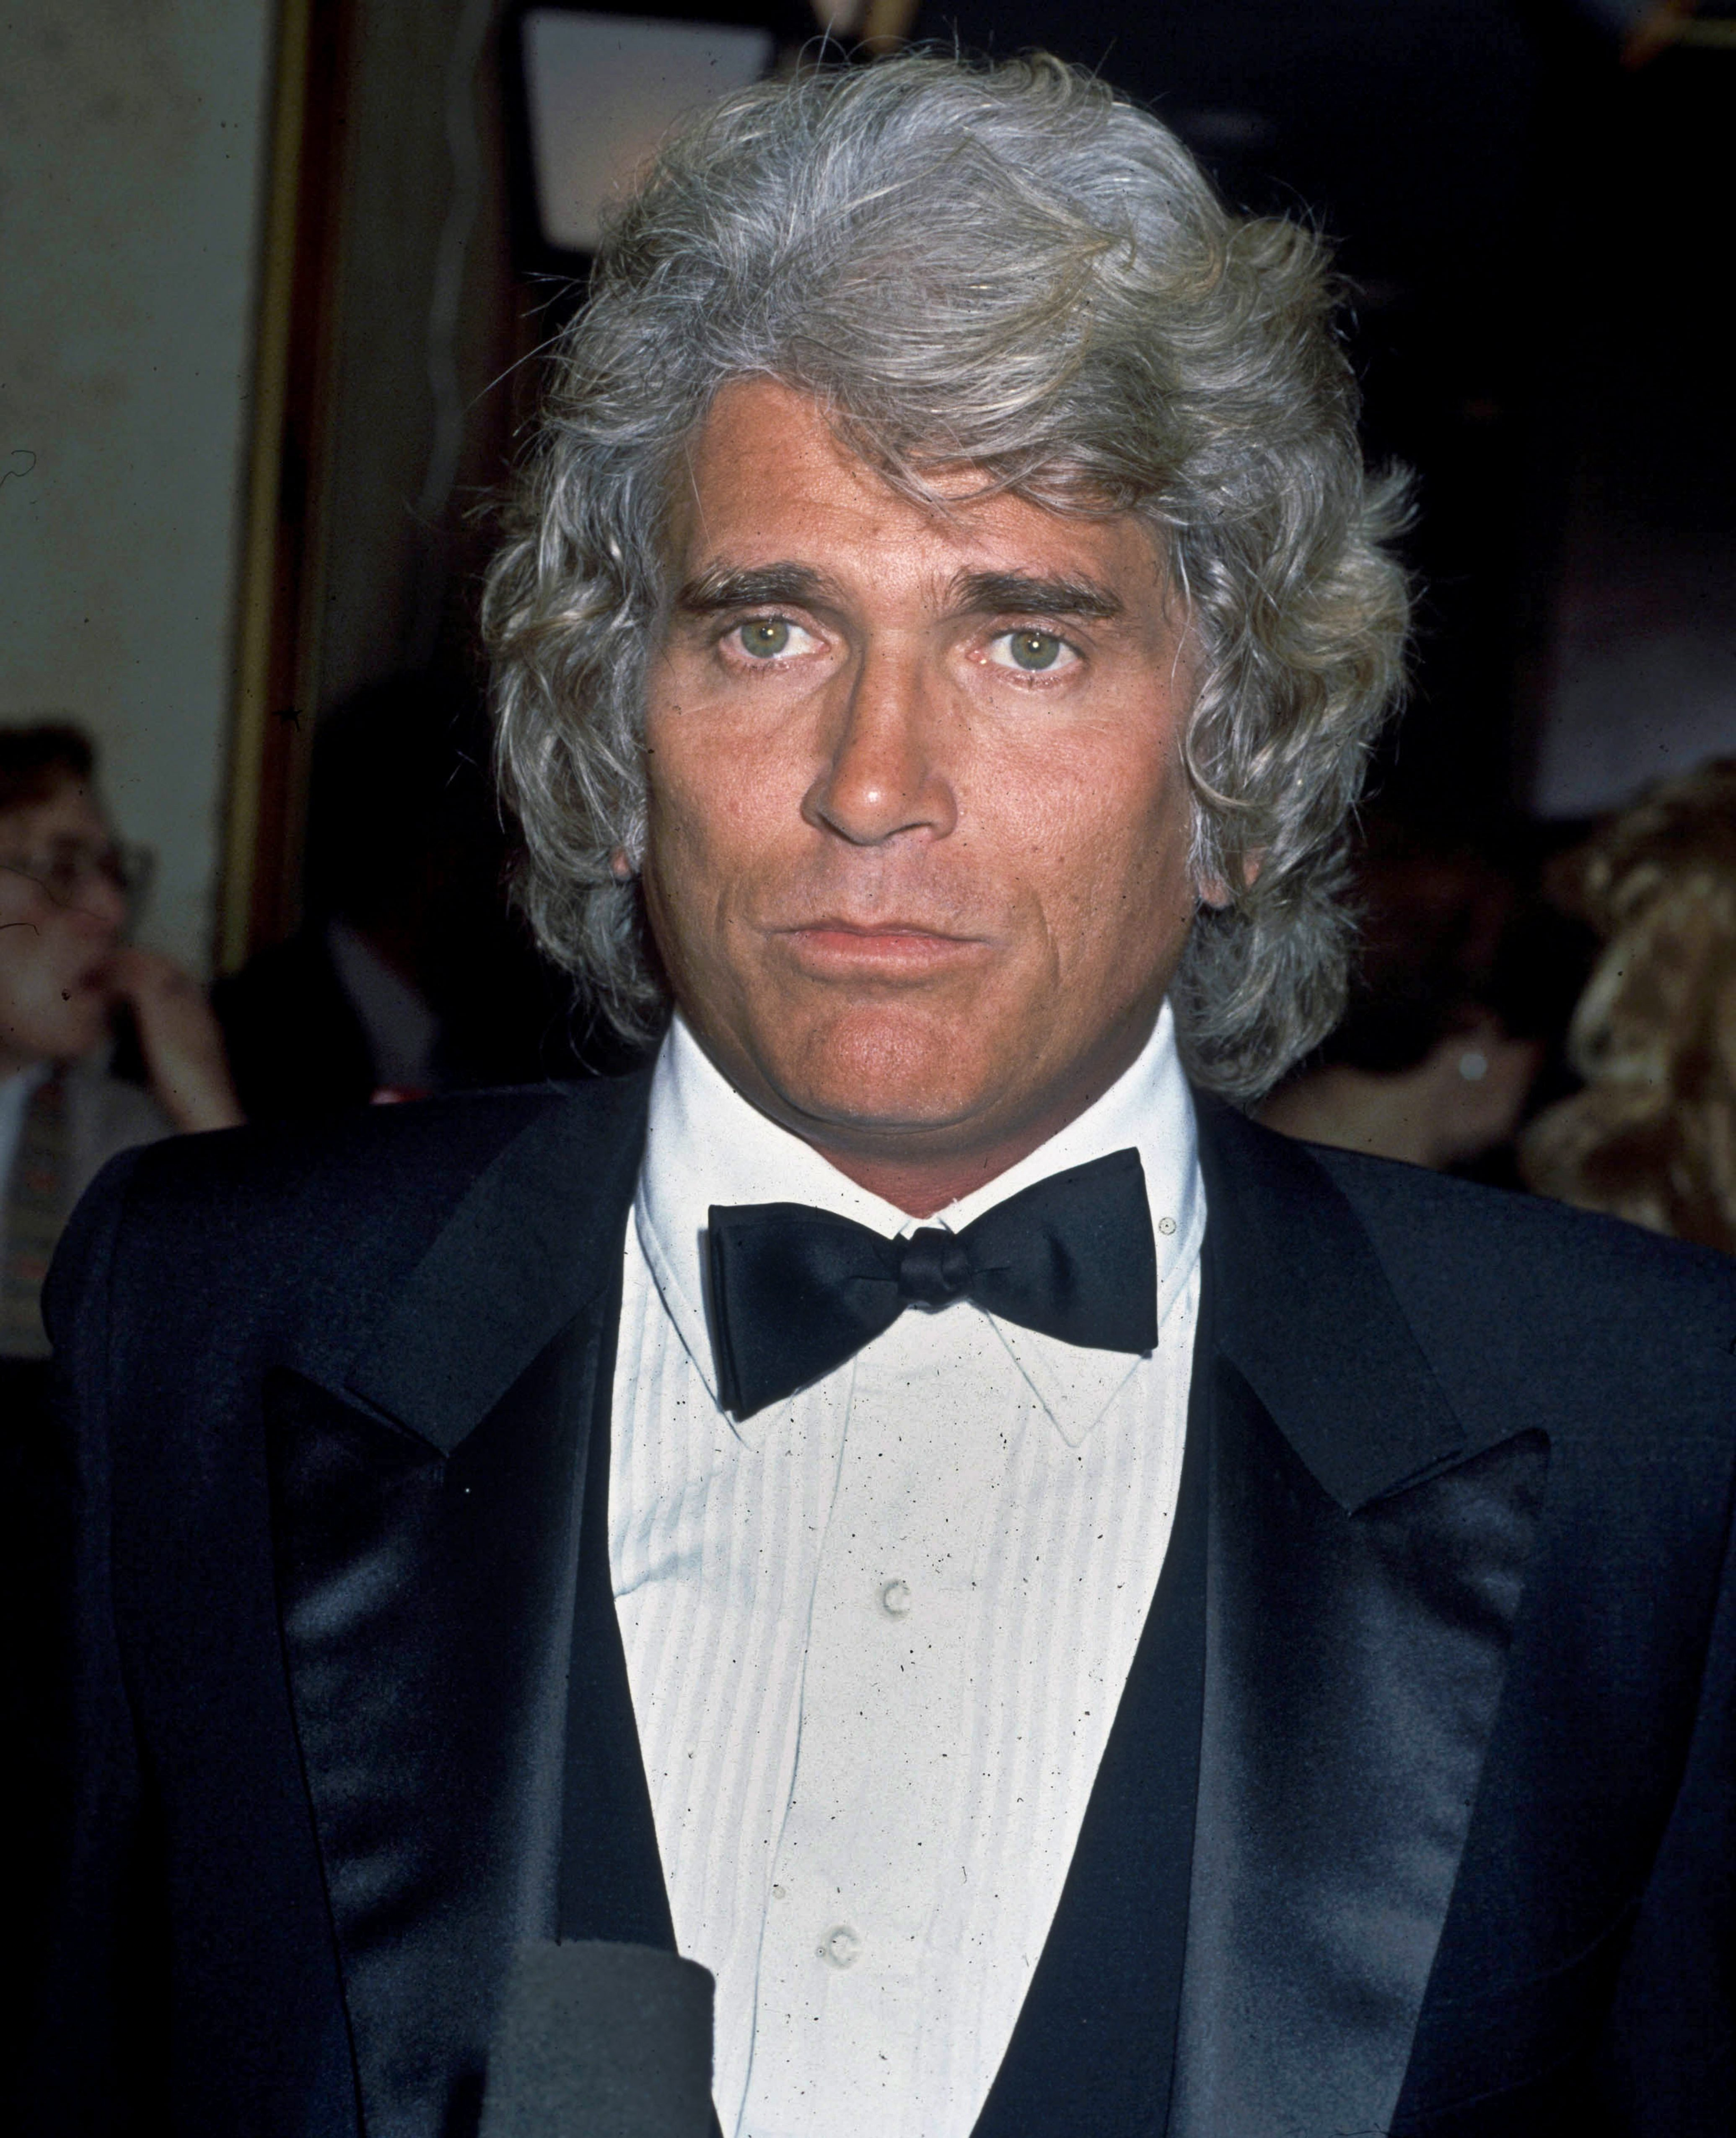 Michael Landon in Hollywood, California for circa 1990 | Photo: Getty Images